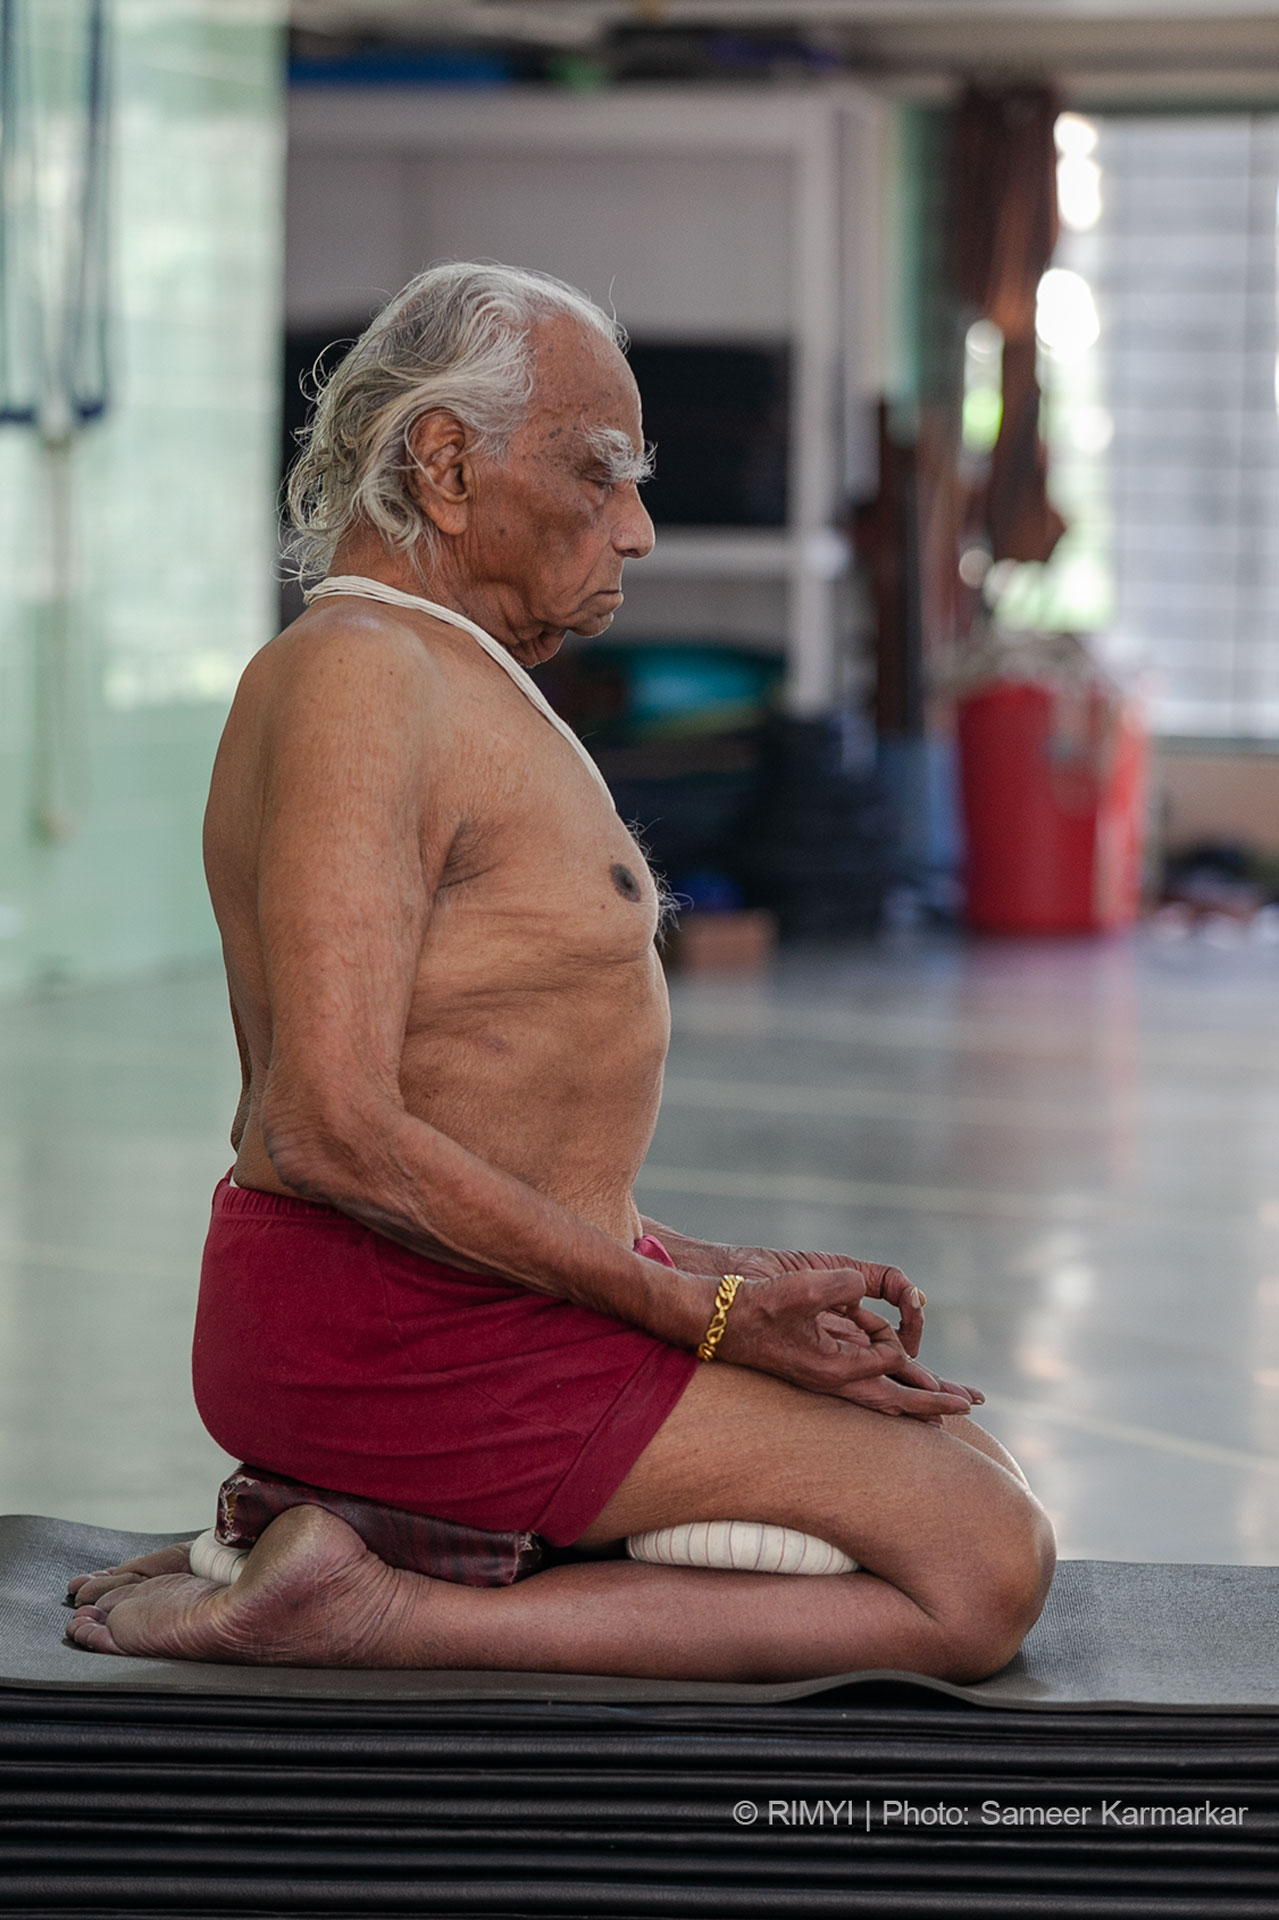 Iyengar's form of yoga is more oriented towards physical asanas and breathing techniques researched over years of personal practice.